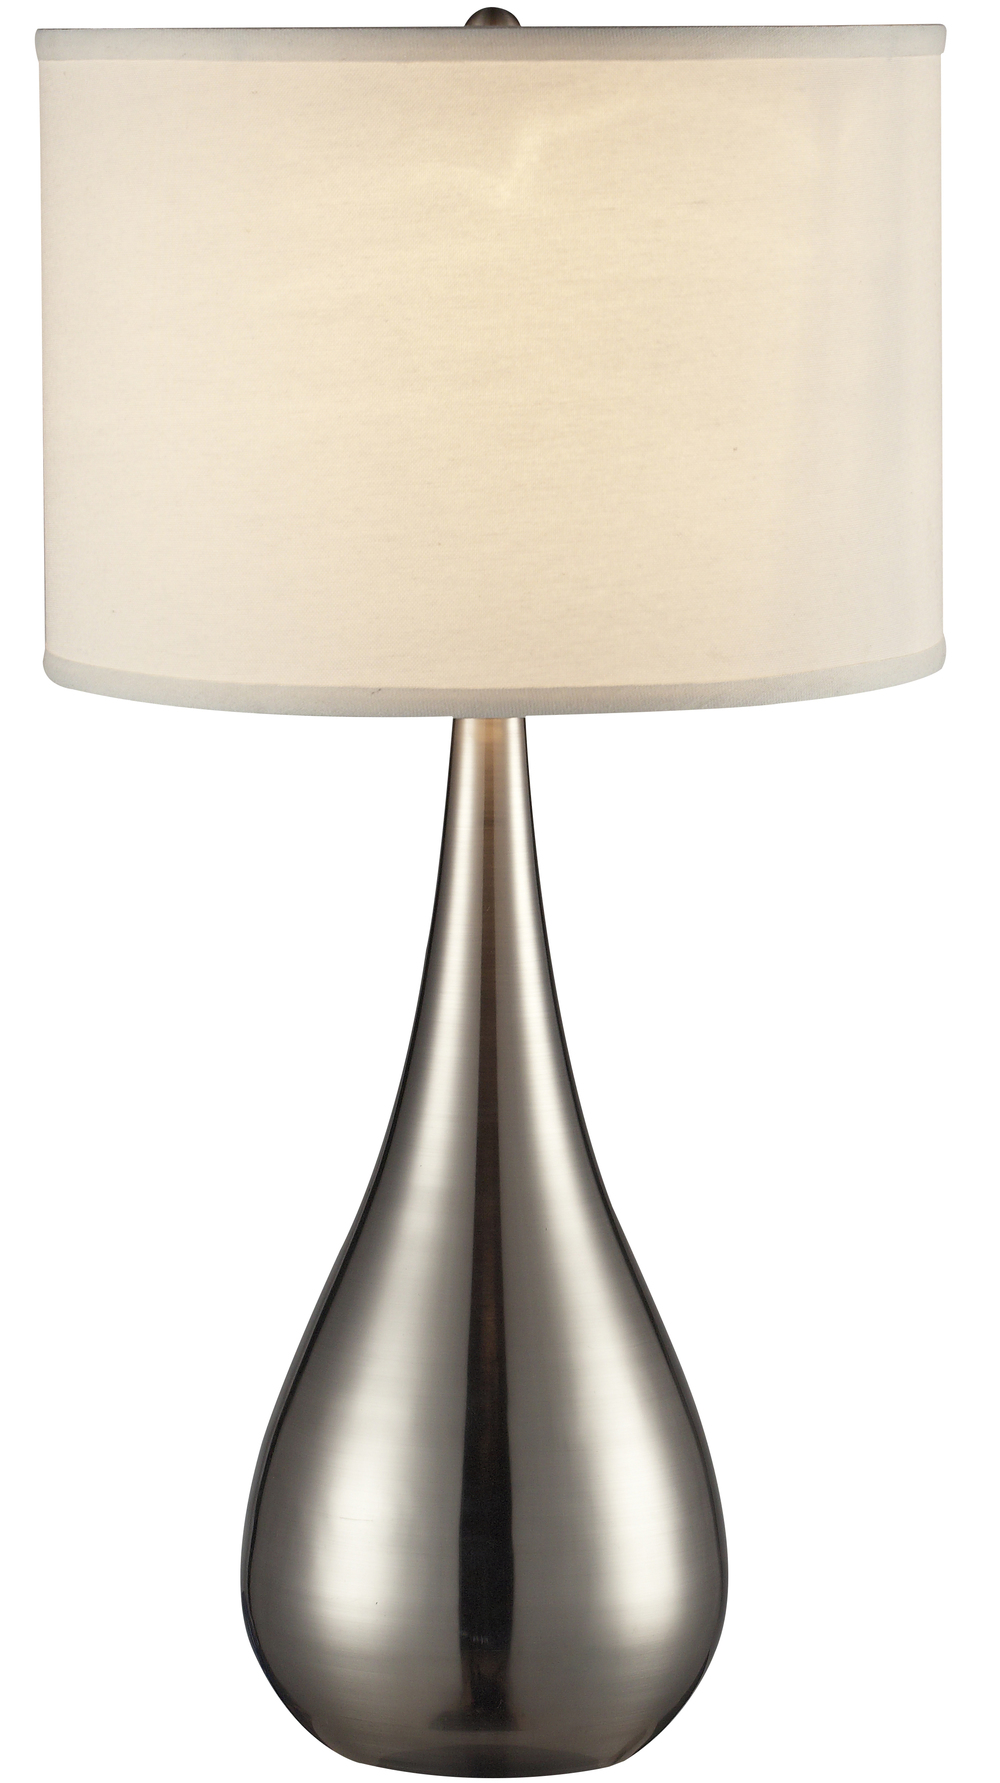 10008 | TEAR DROP TABLE LAMP